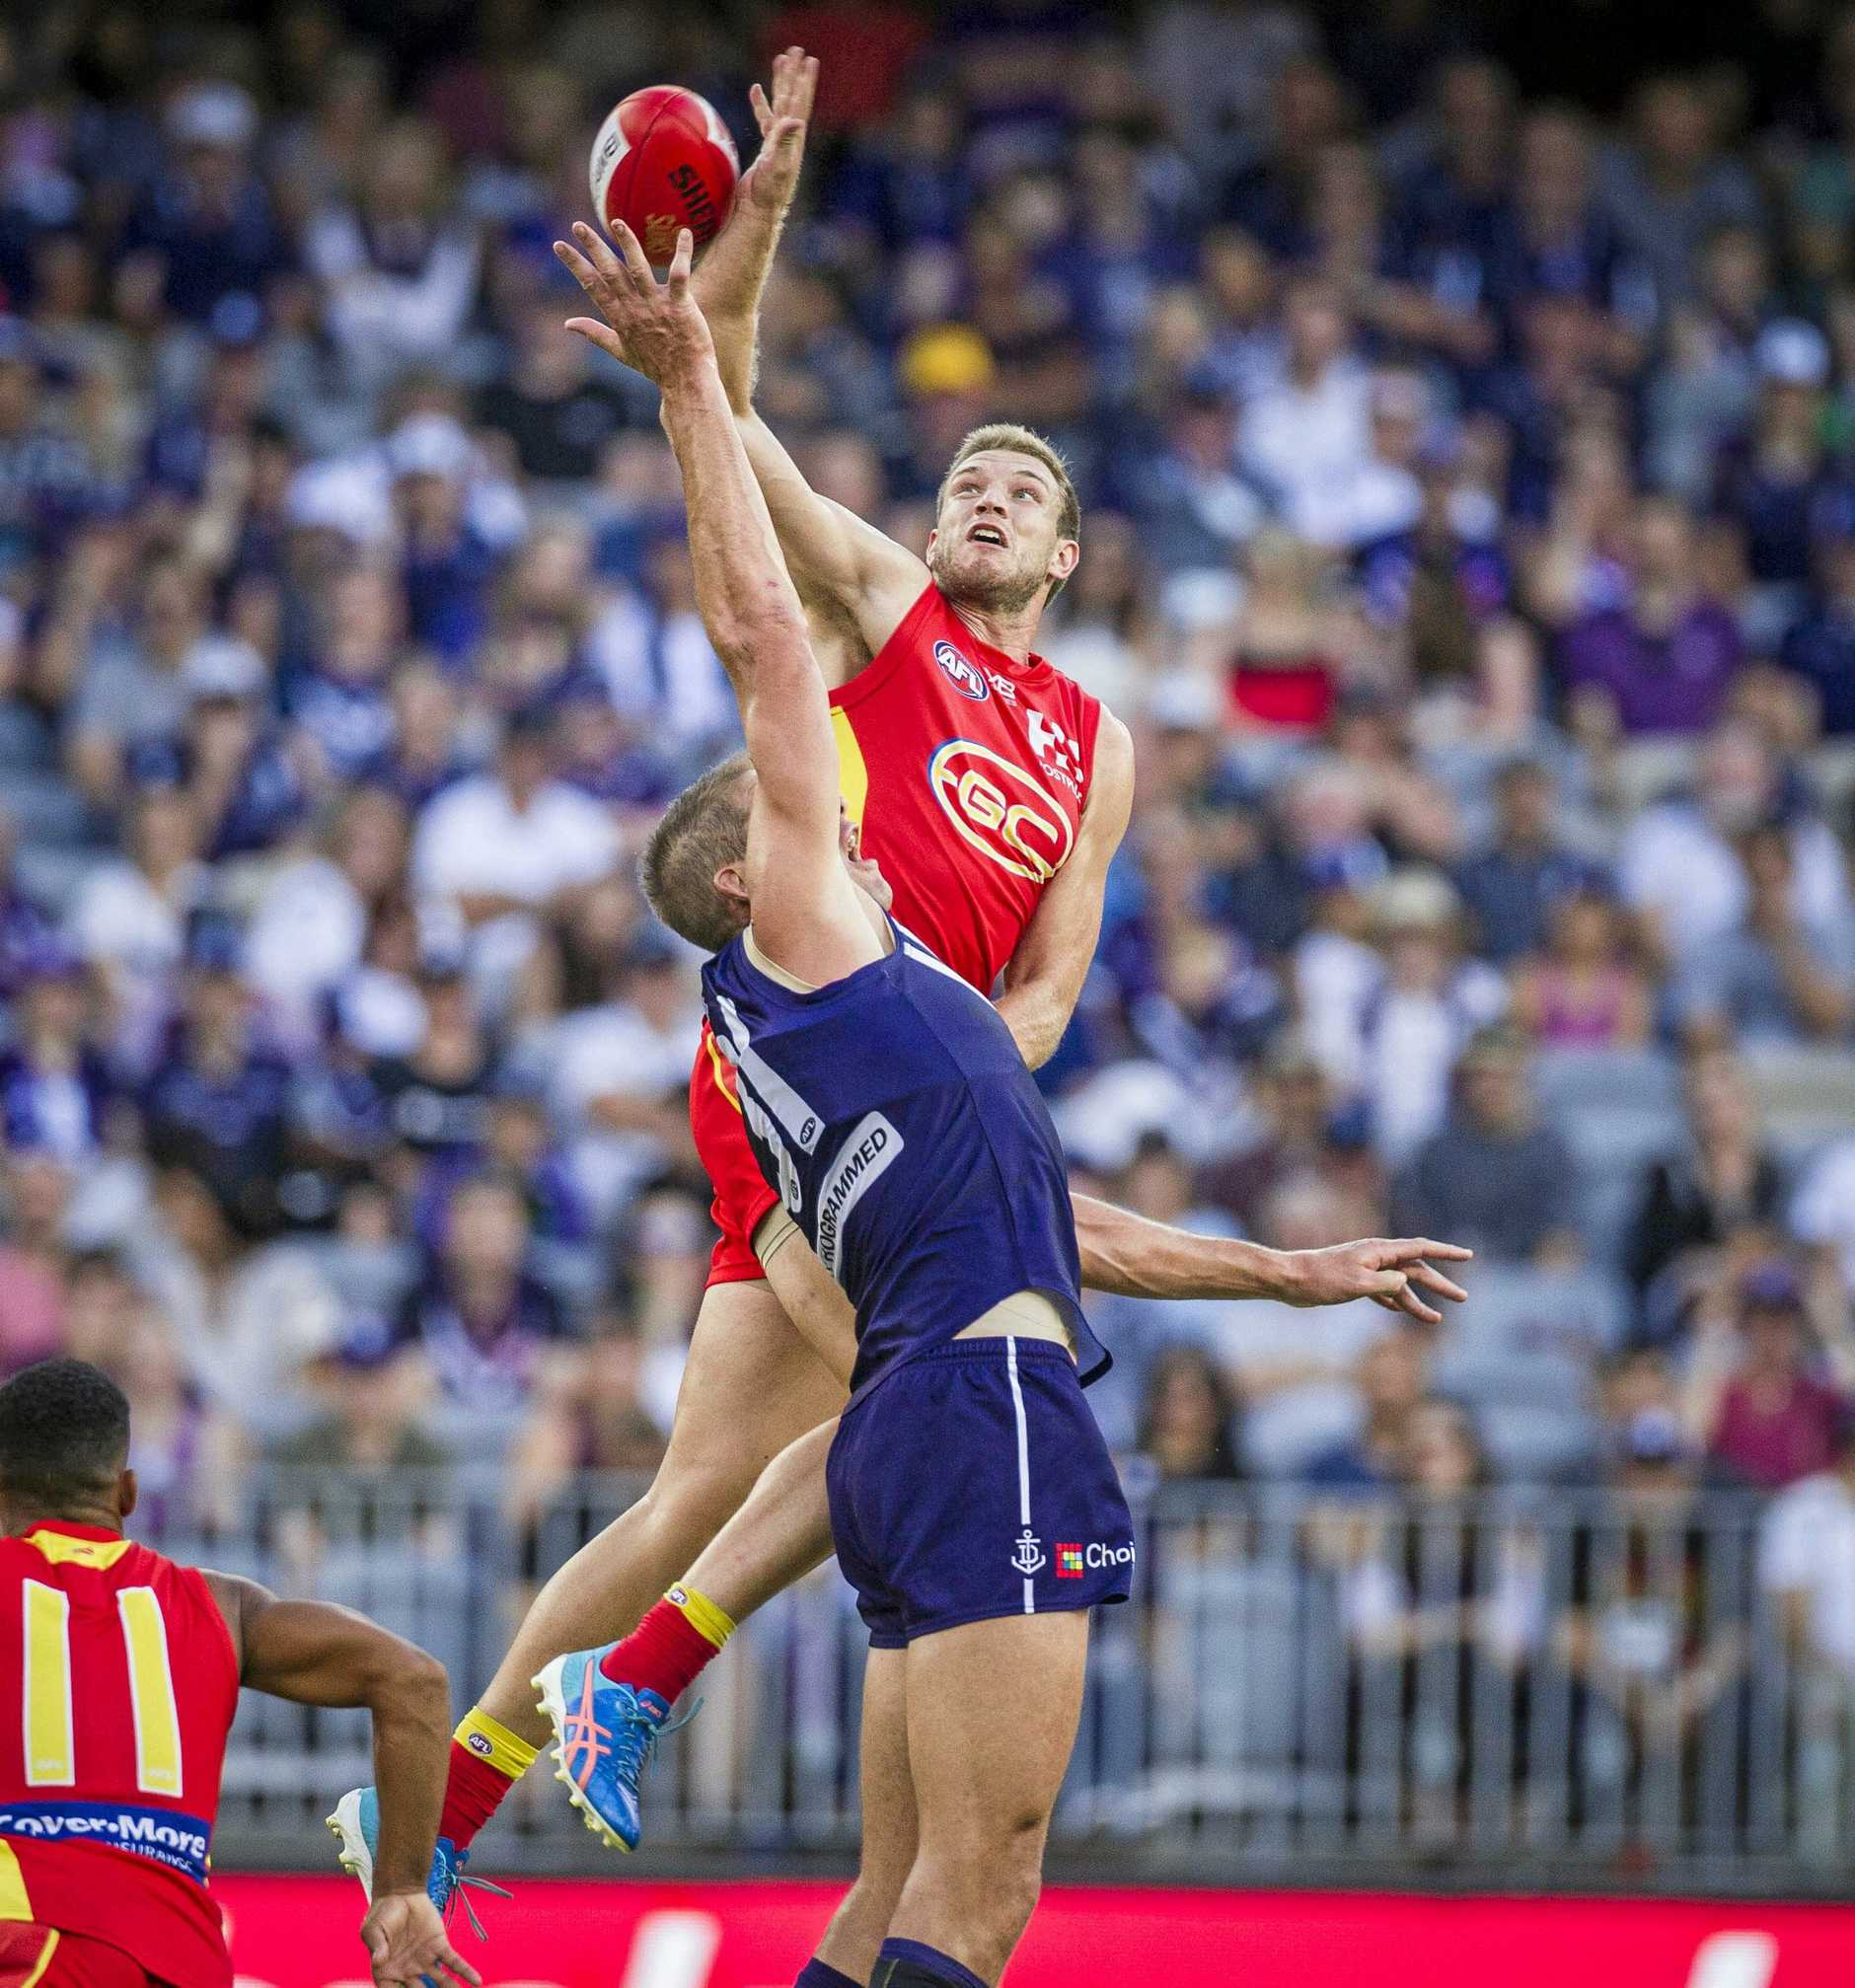 Gold Cost big man Sam Day outjumps Fremantle's Aaron Sandilands in a ruck contest in their round three clash in Perth.